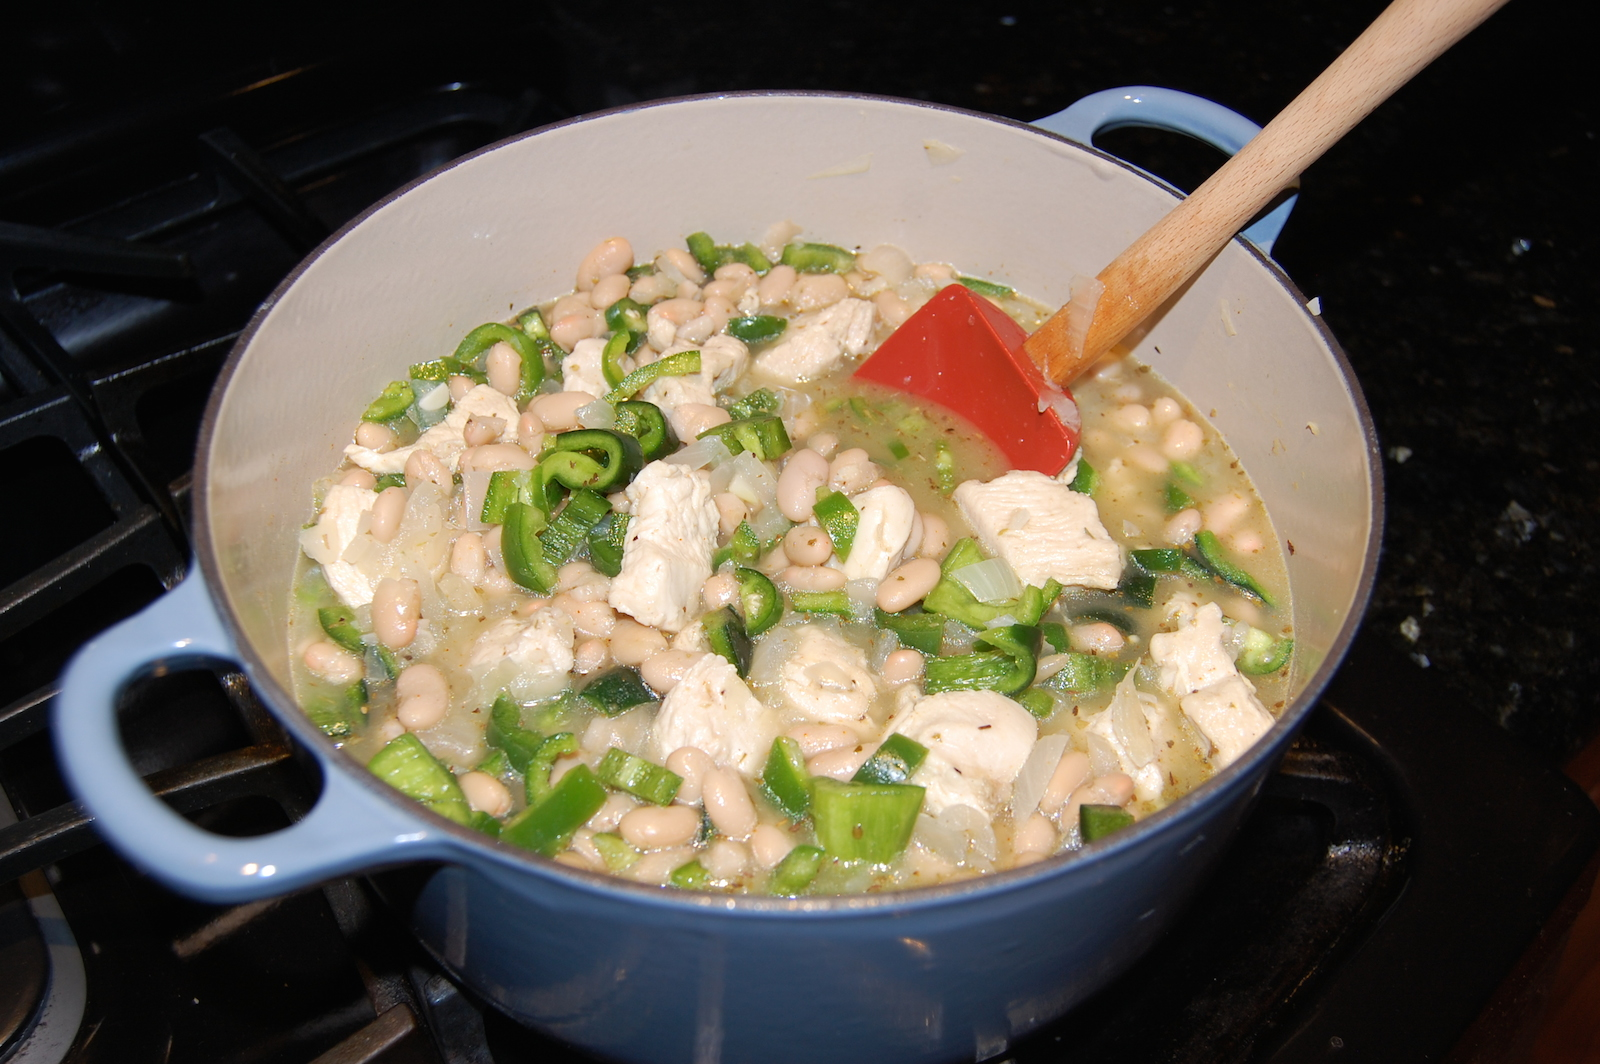 Add the Second Bowl to White Chicken Chili Recipe on Stove and Bring to Simmer